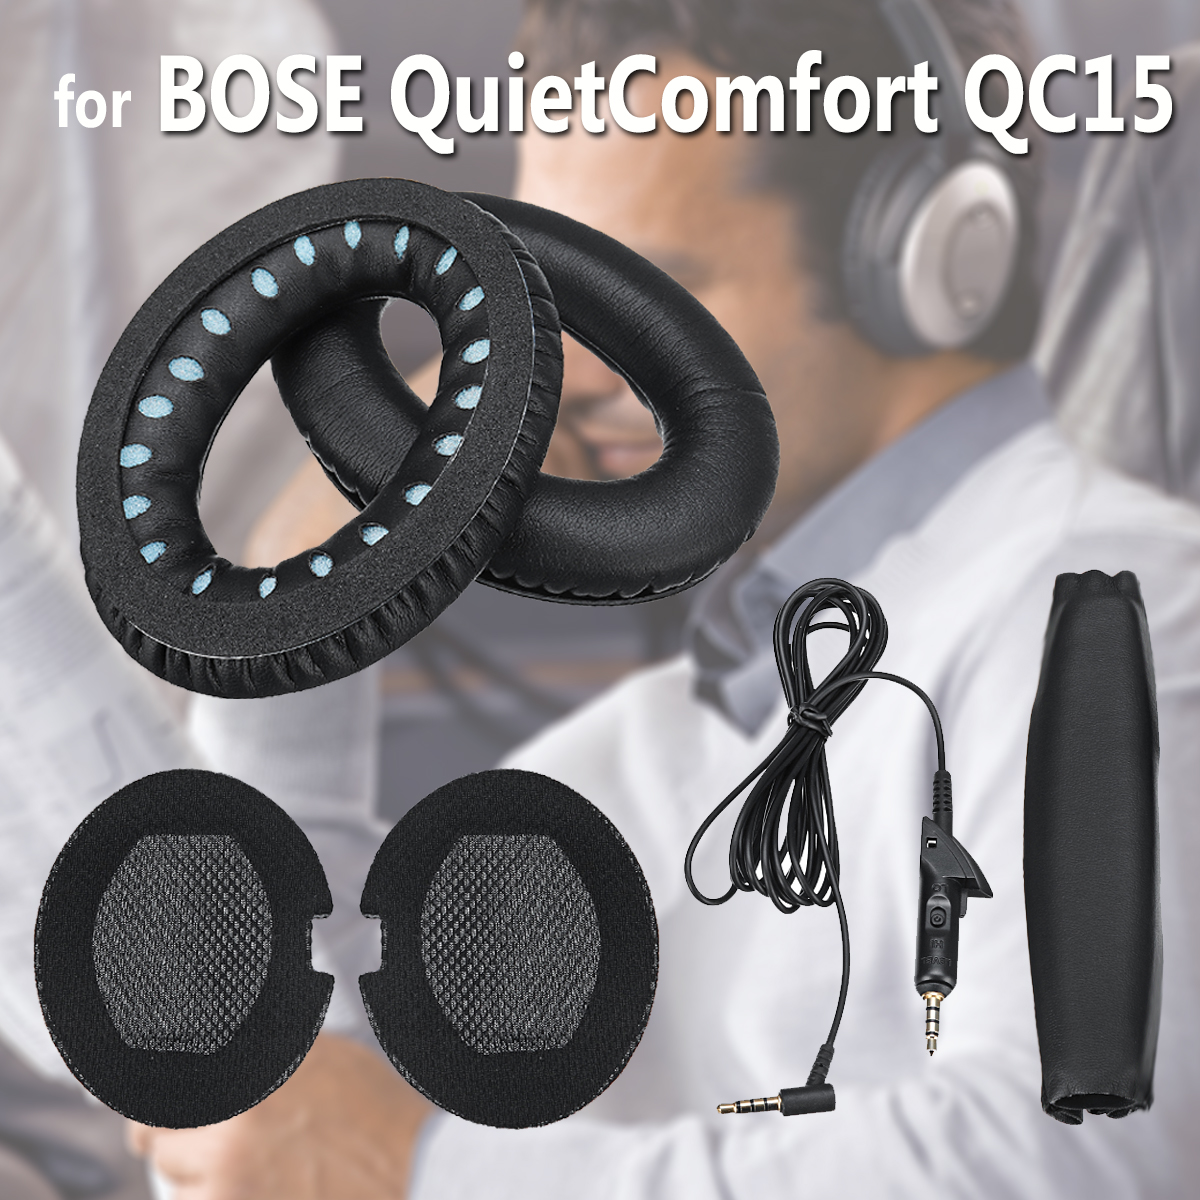 Replacement Ear Pads 5.5 FT Audio Cable Headband Set Ear Pad Cushions Ear Cups For Quiet Comfort QC15 (Black)